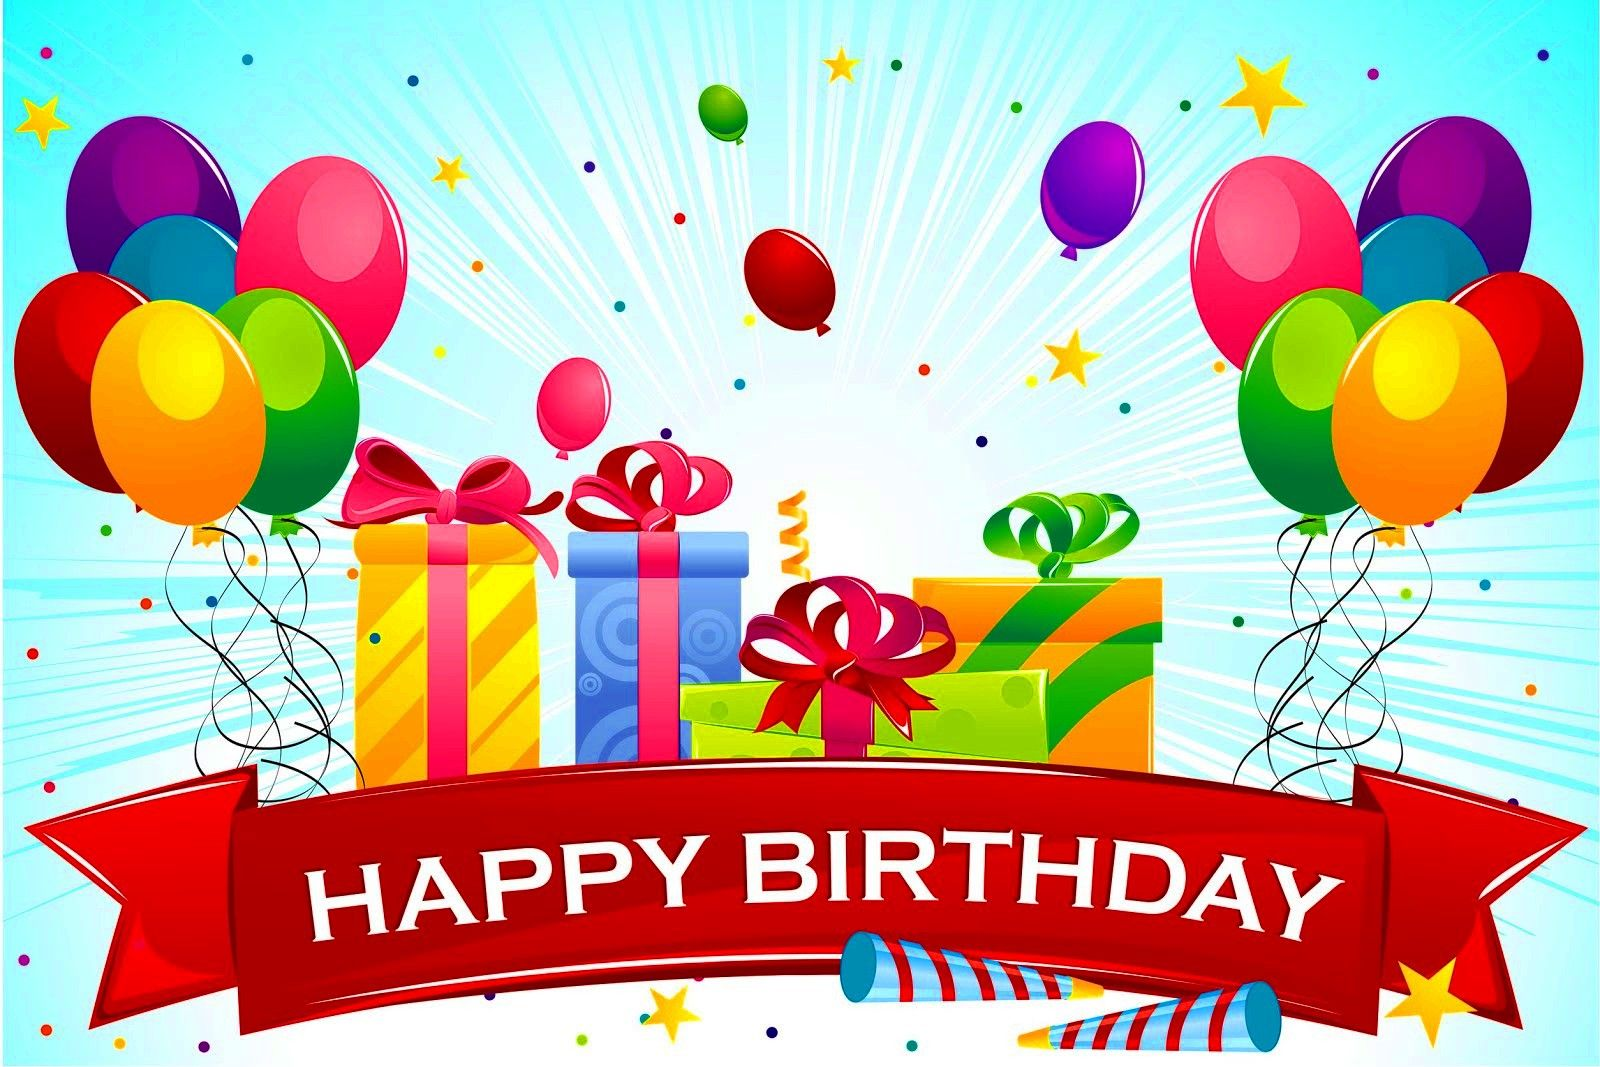 Happy Birthday Song Free Download Free Large Images Happy Birthday Wishes Images Birthday Wishes And Images Happy Birthday Messages